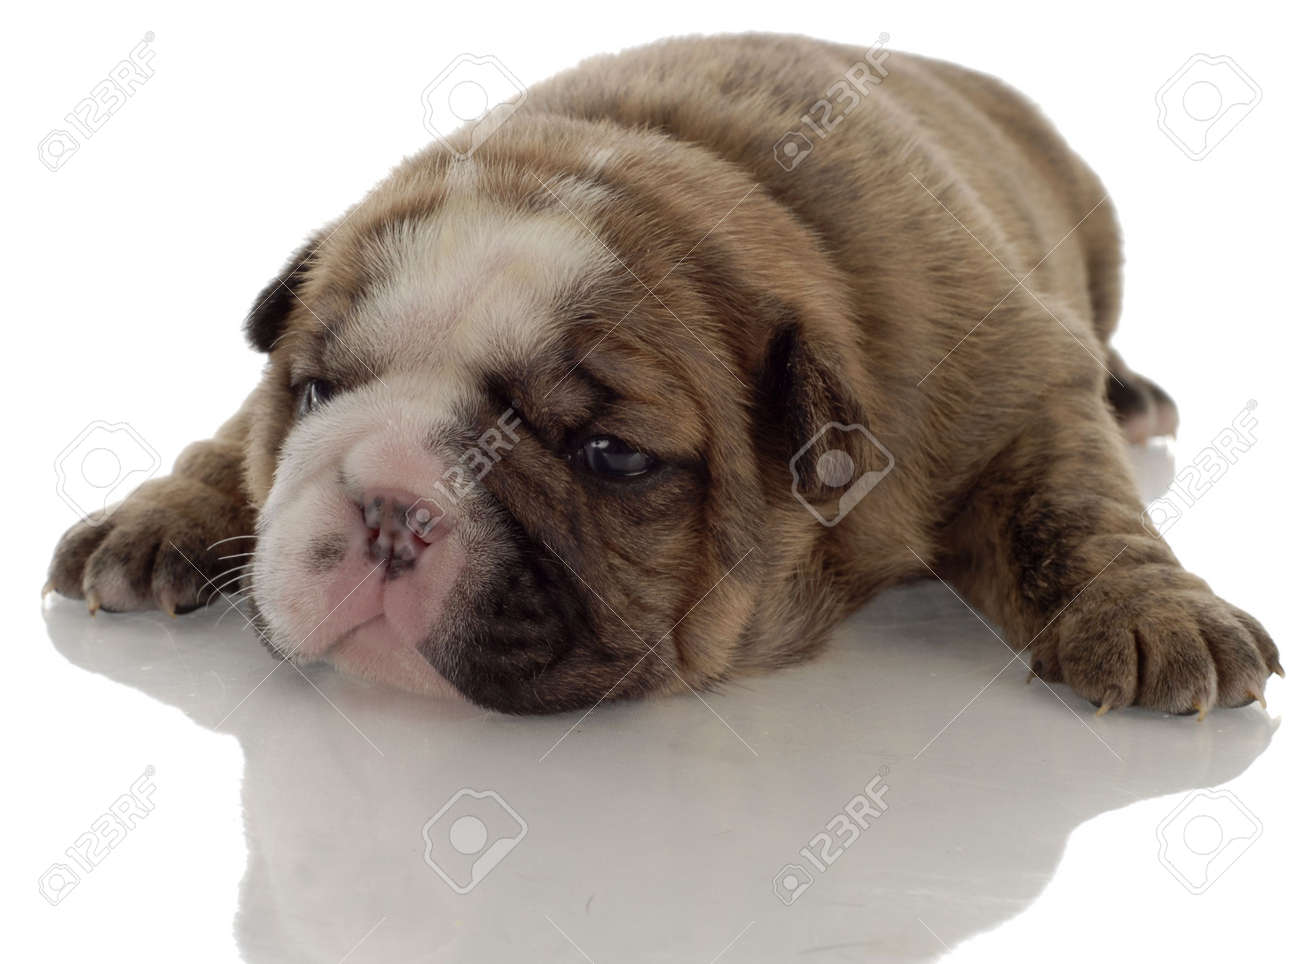 Brindle English Bulldog Puppy With Reflection On White Background Stock Photo Picture And Royalty Free Image Image 5891718